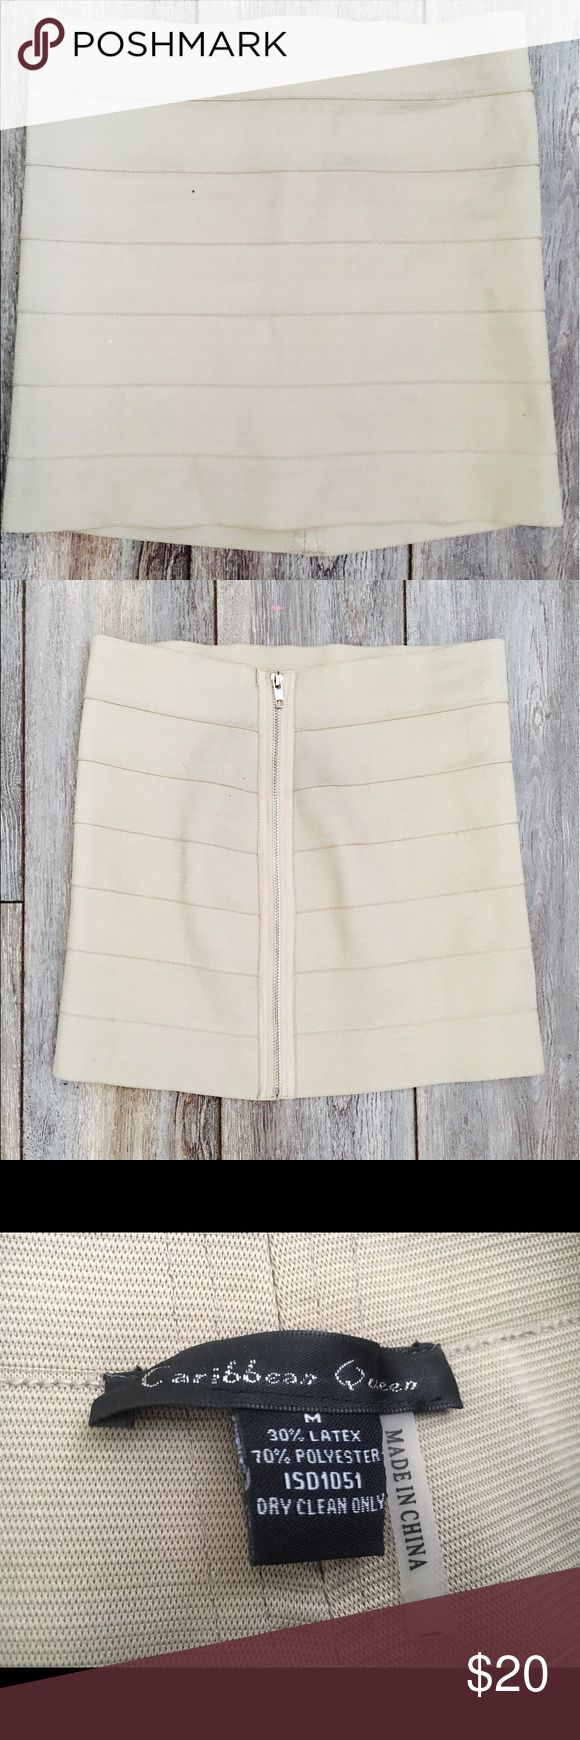 Selling this Caribbean Queen cream bandage mini skirt on Poshmark! My username is: jdonith. #shopmycloset #poshmark #fashion #shopping #style #forsale #Caribbean Queen #Dresses & Skirts